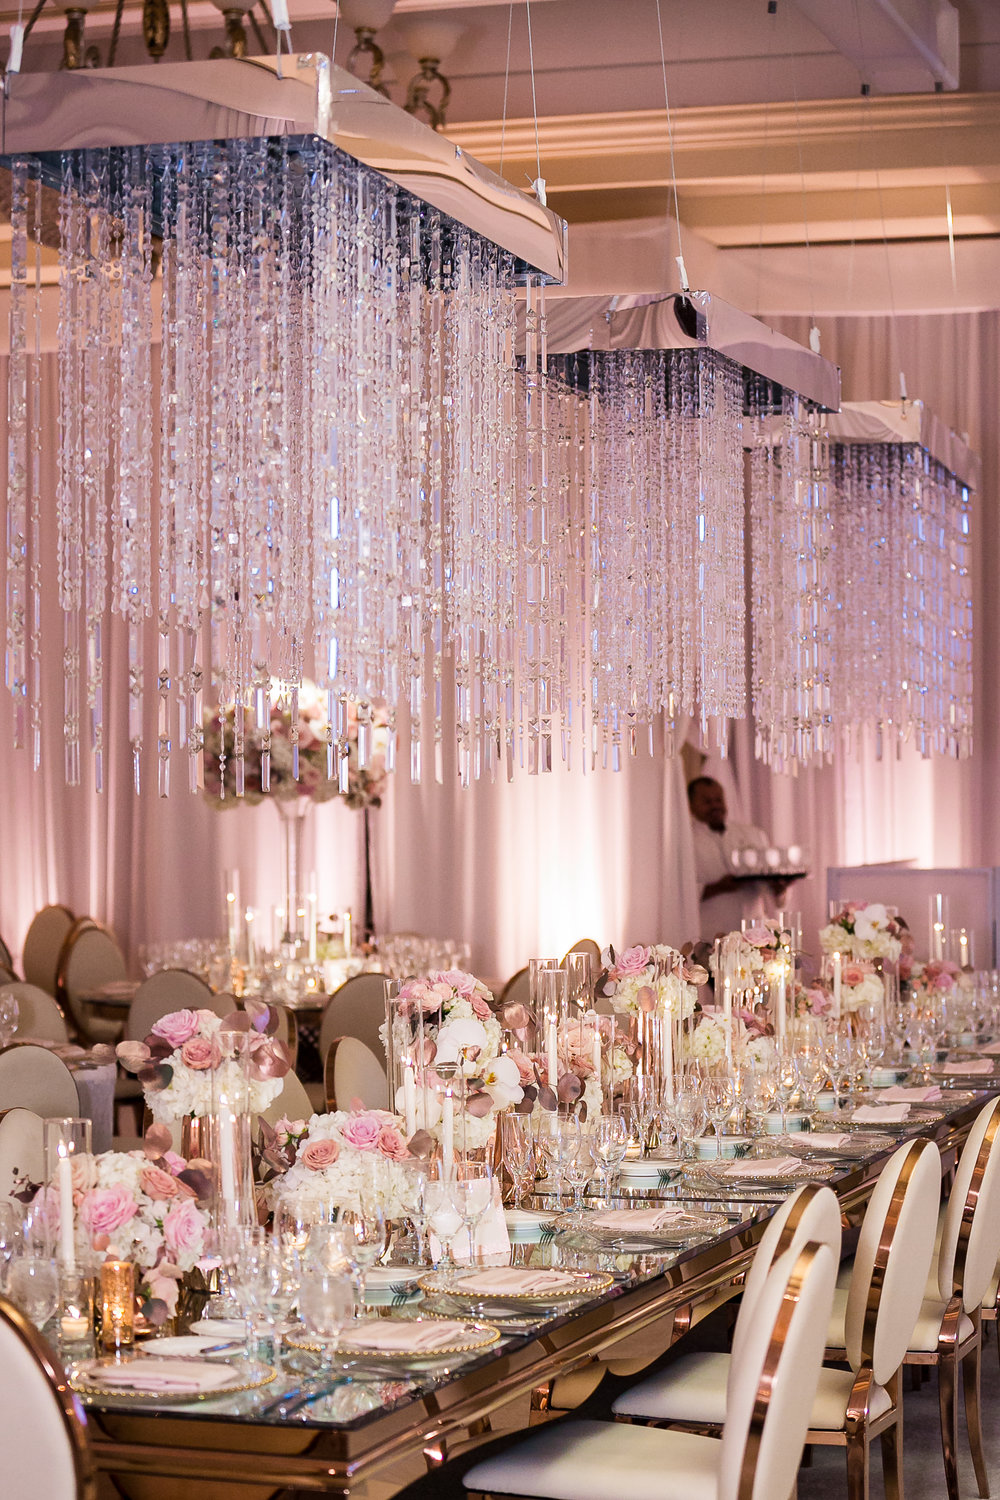 suspended rose gold wedding mirror table decorarions with flowers and candles 1